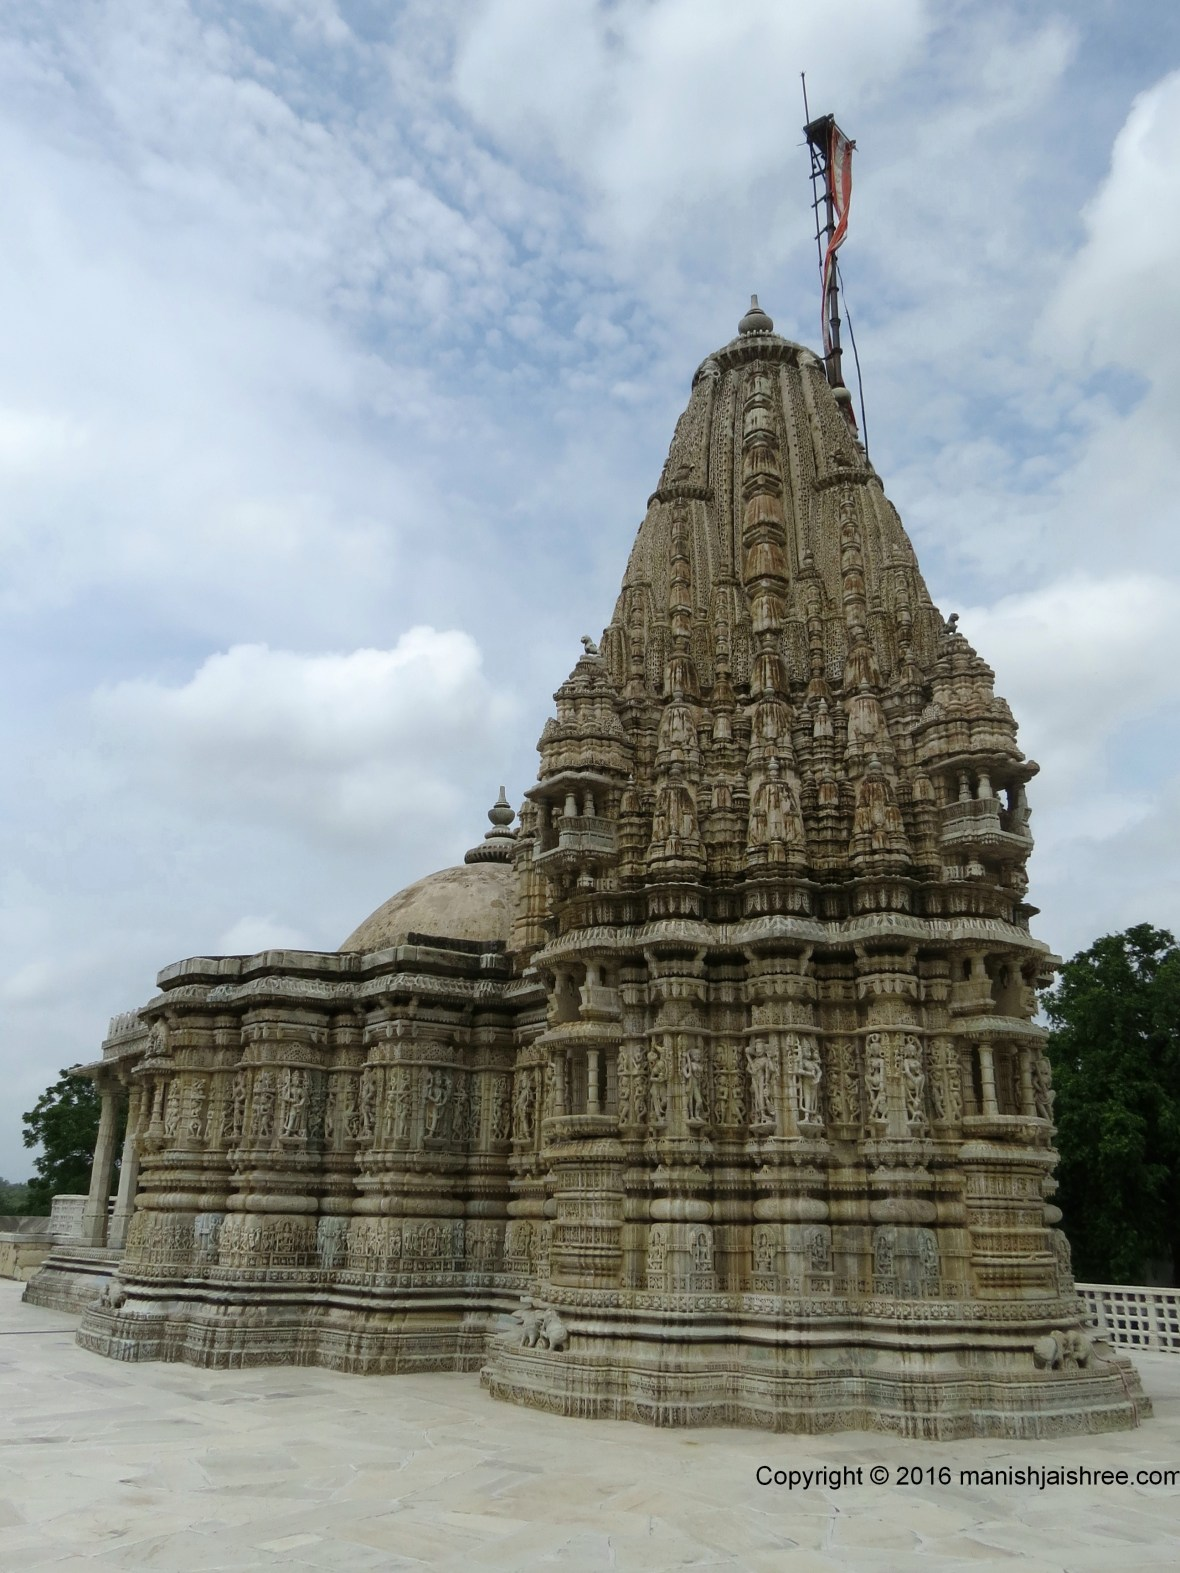 One last look at the Temple of Parshvanath Bhagwan, Ranakpur